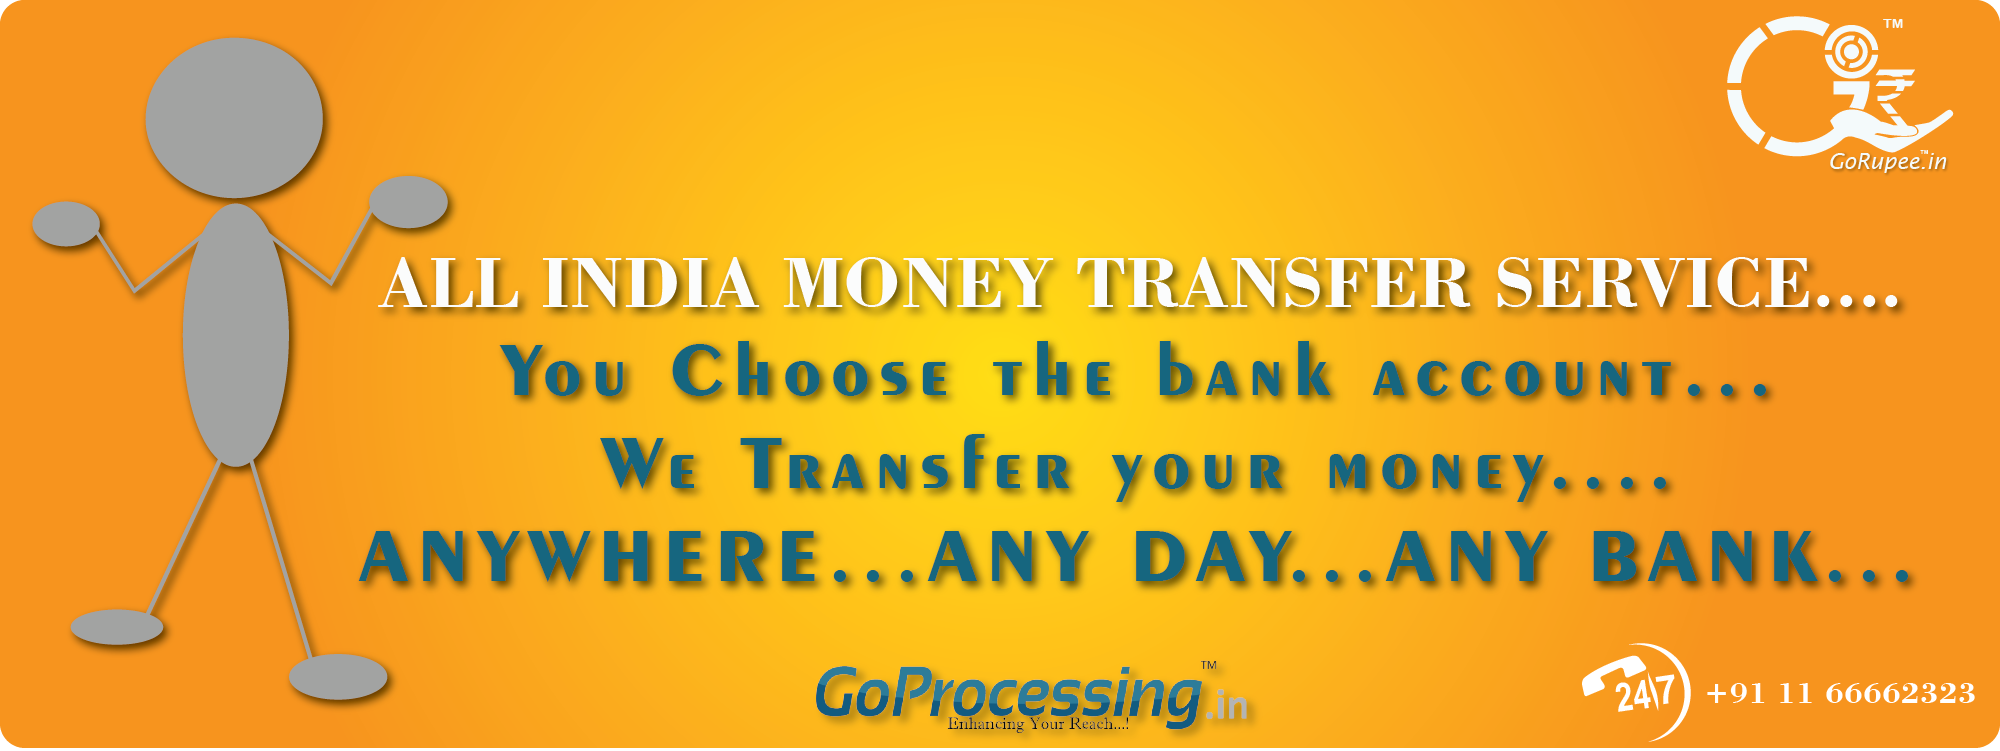 All India Money Transfer Service You Choose The Bank Account We Your Anywhere Any Day